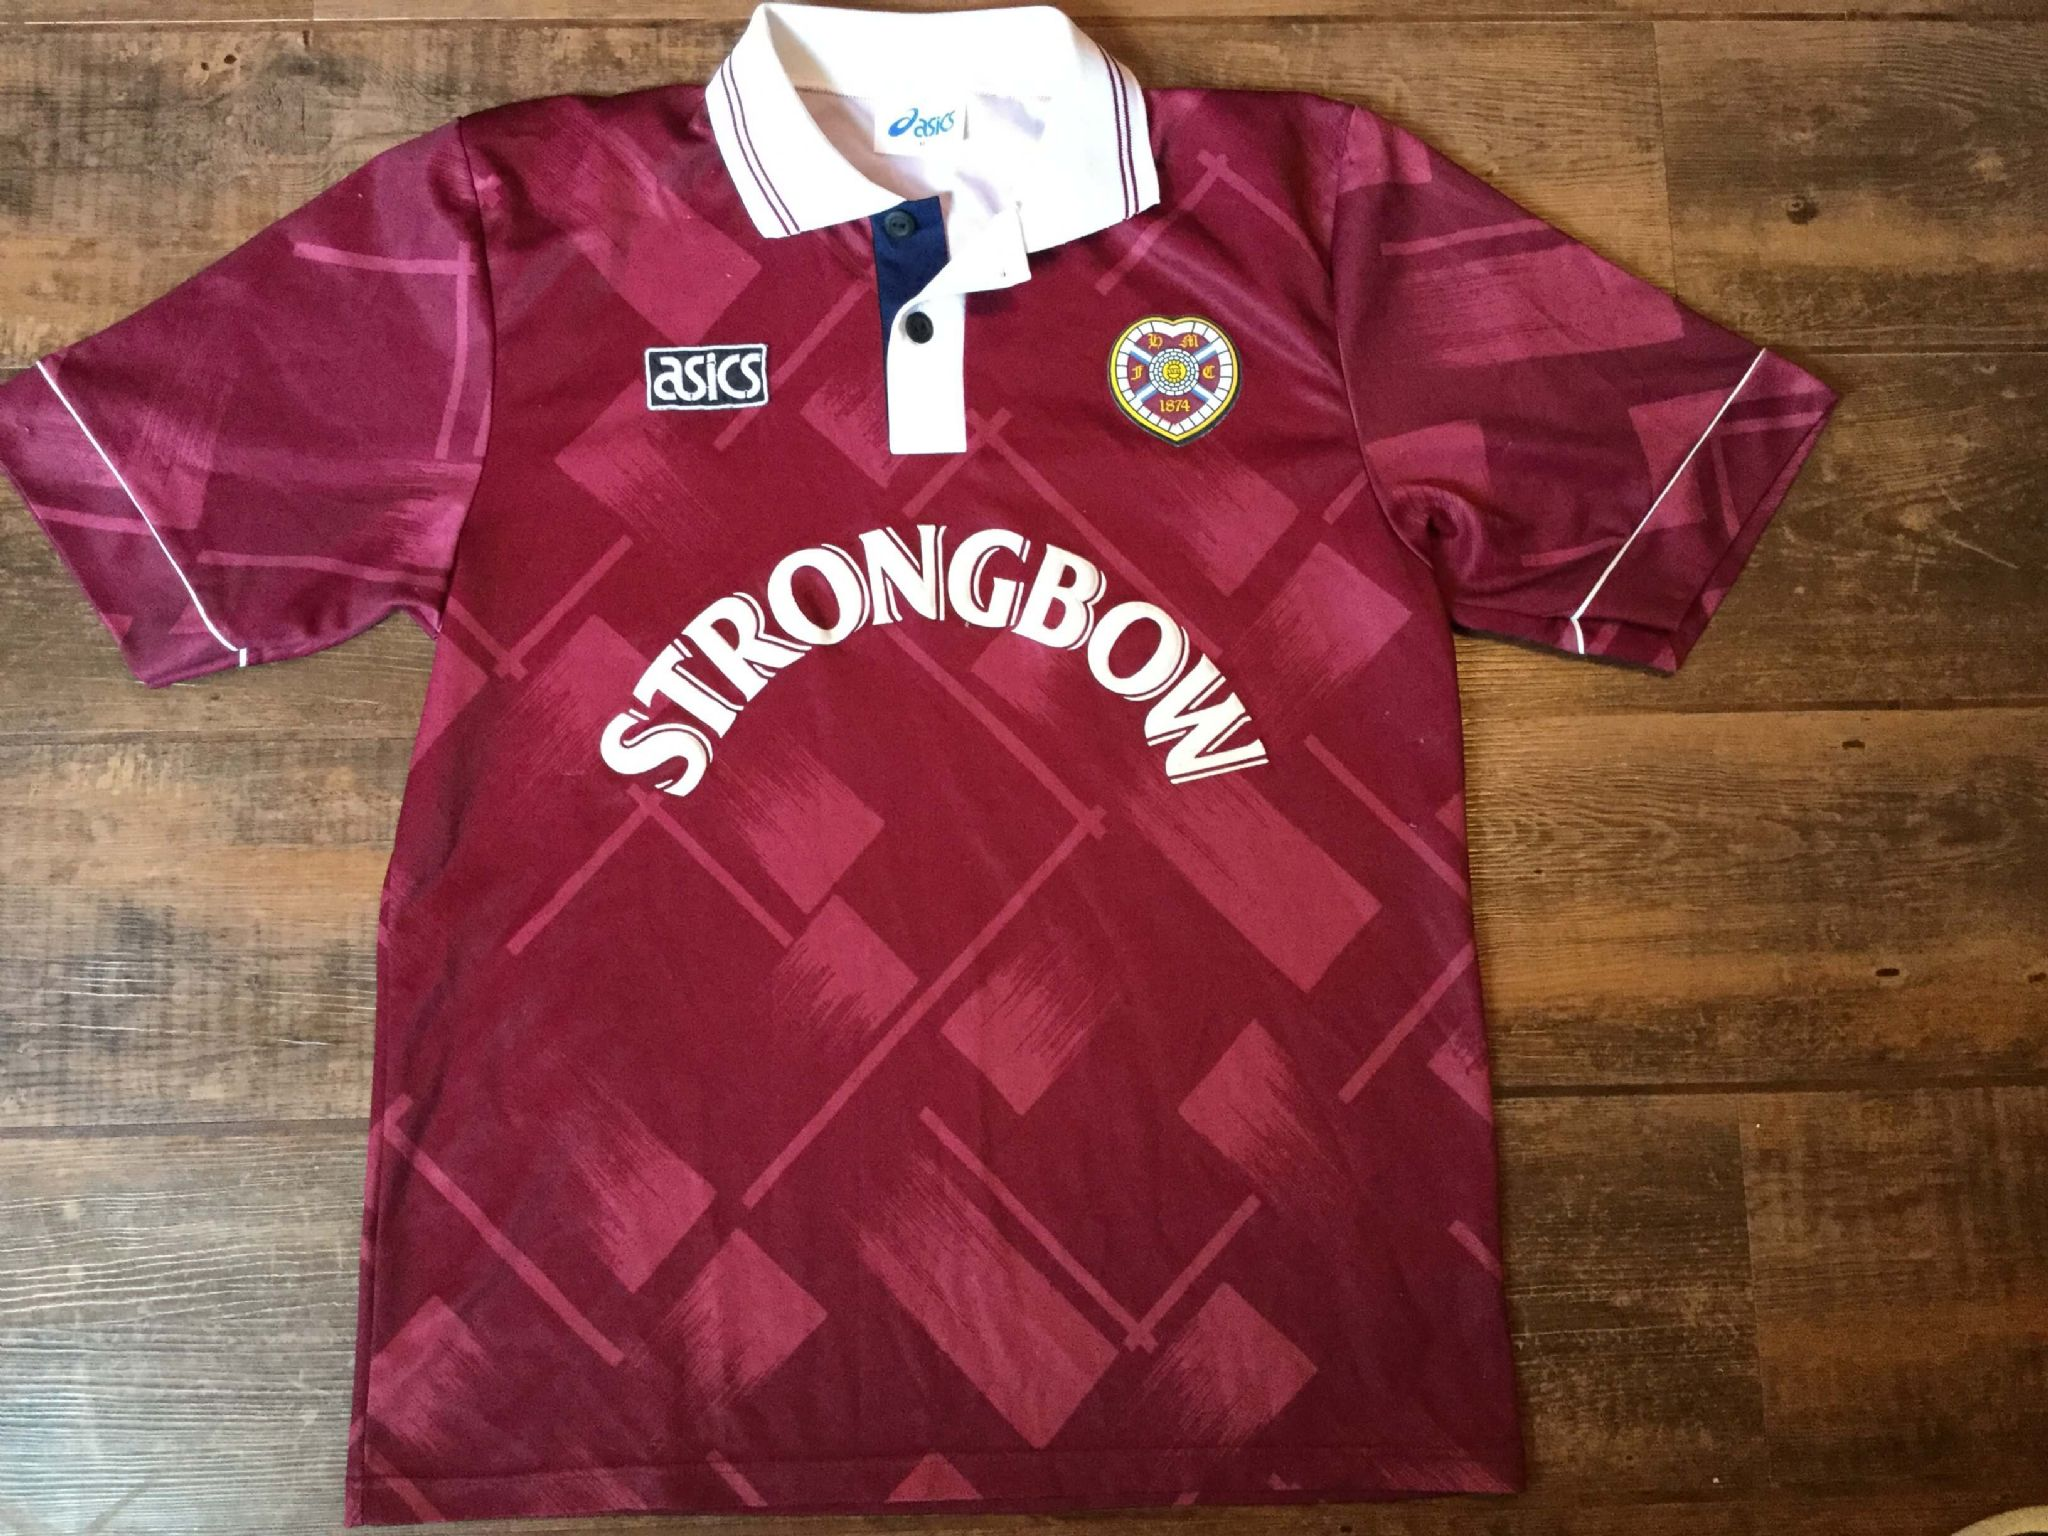 Classic Scotland Football Shirts - Cotswold Hire e13bbd097